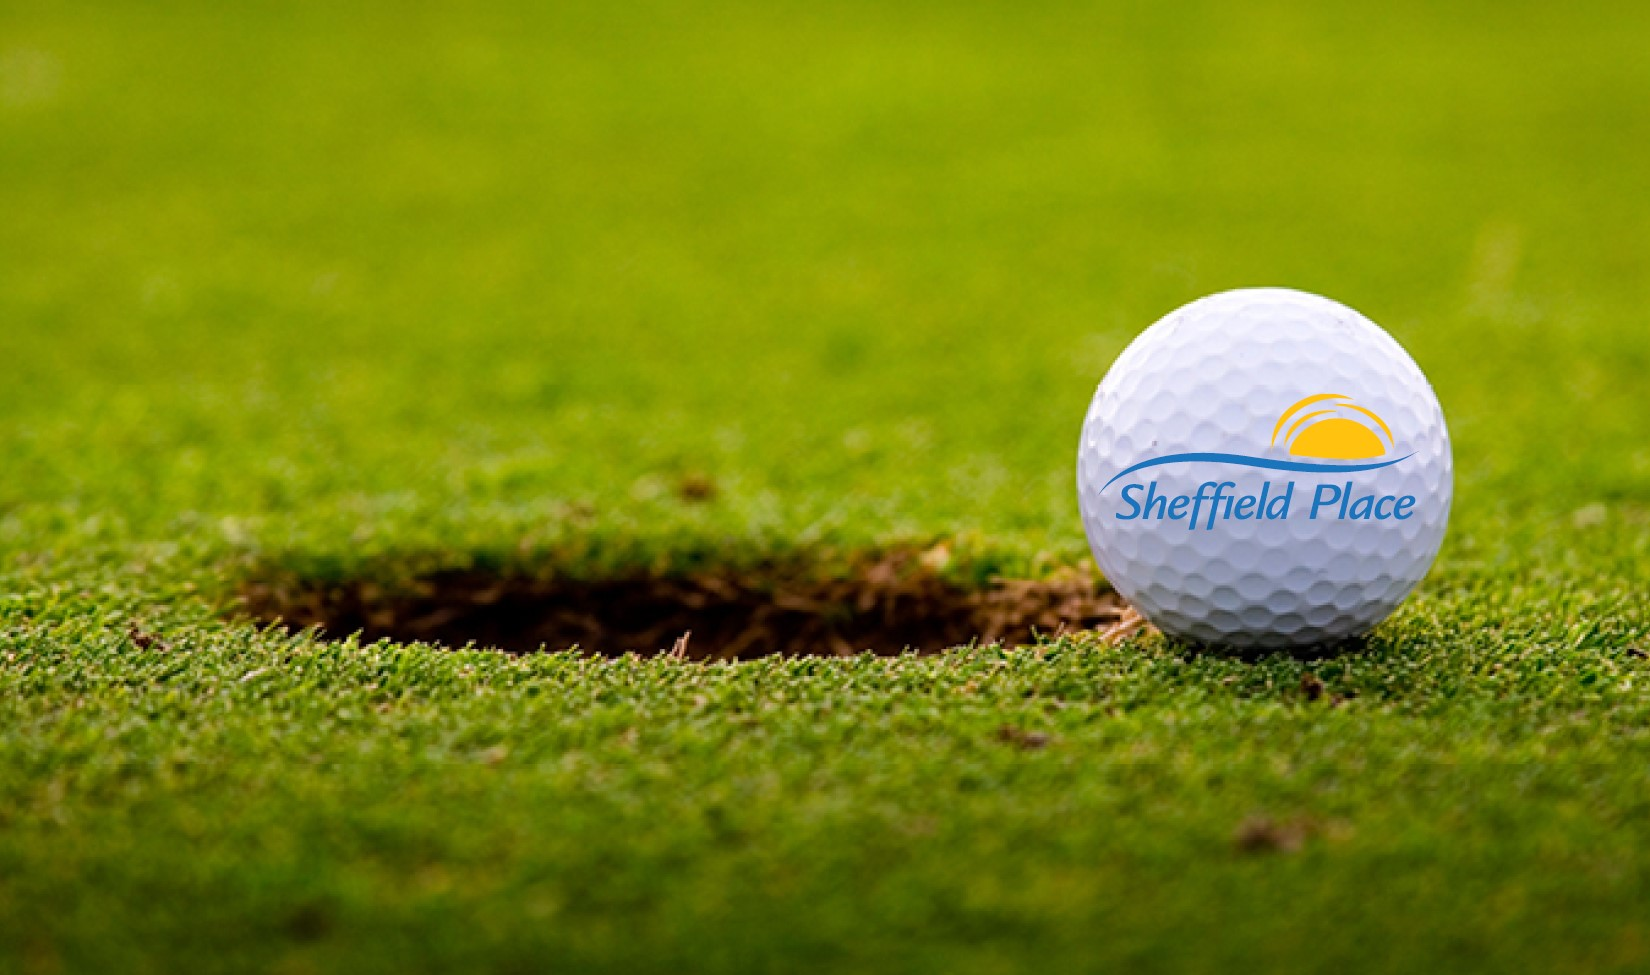 golf ball with logo.jpg